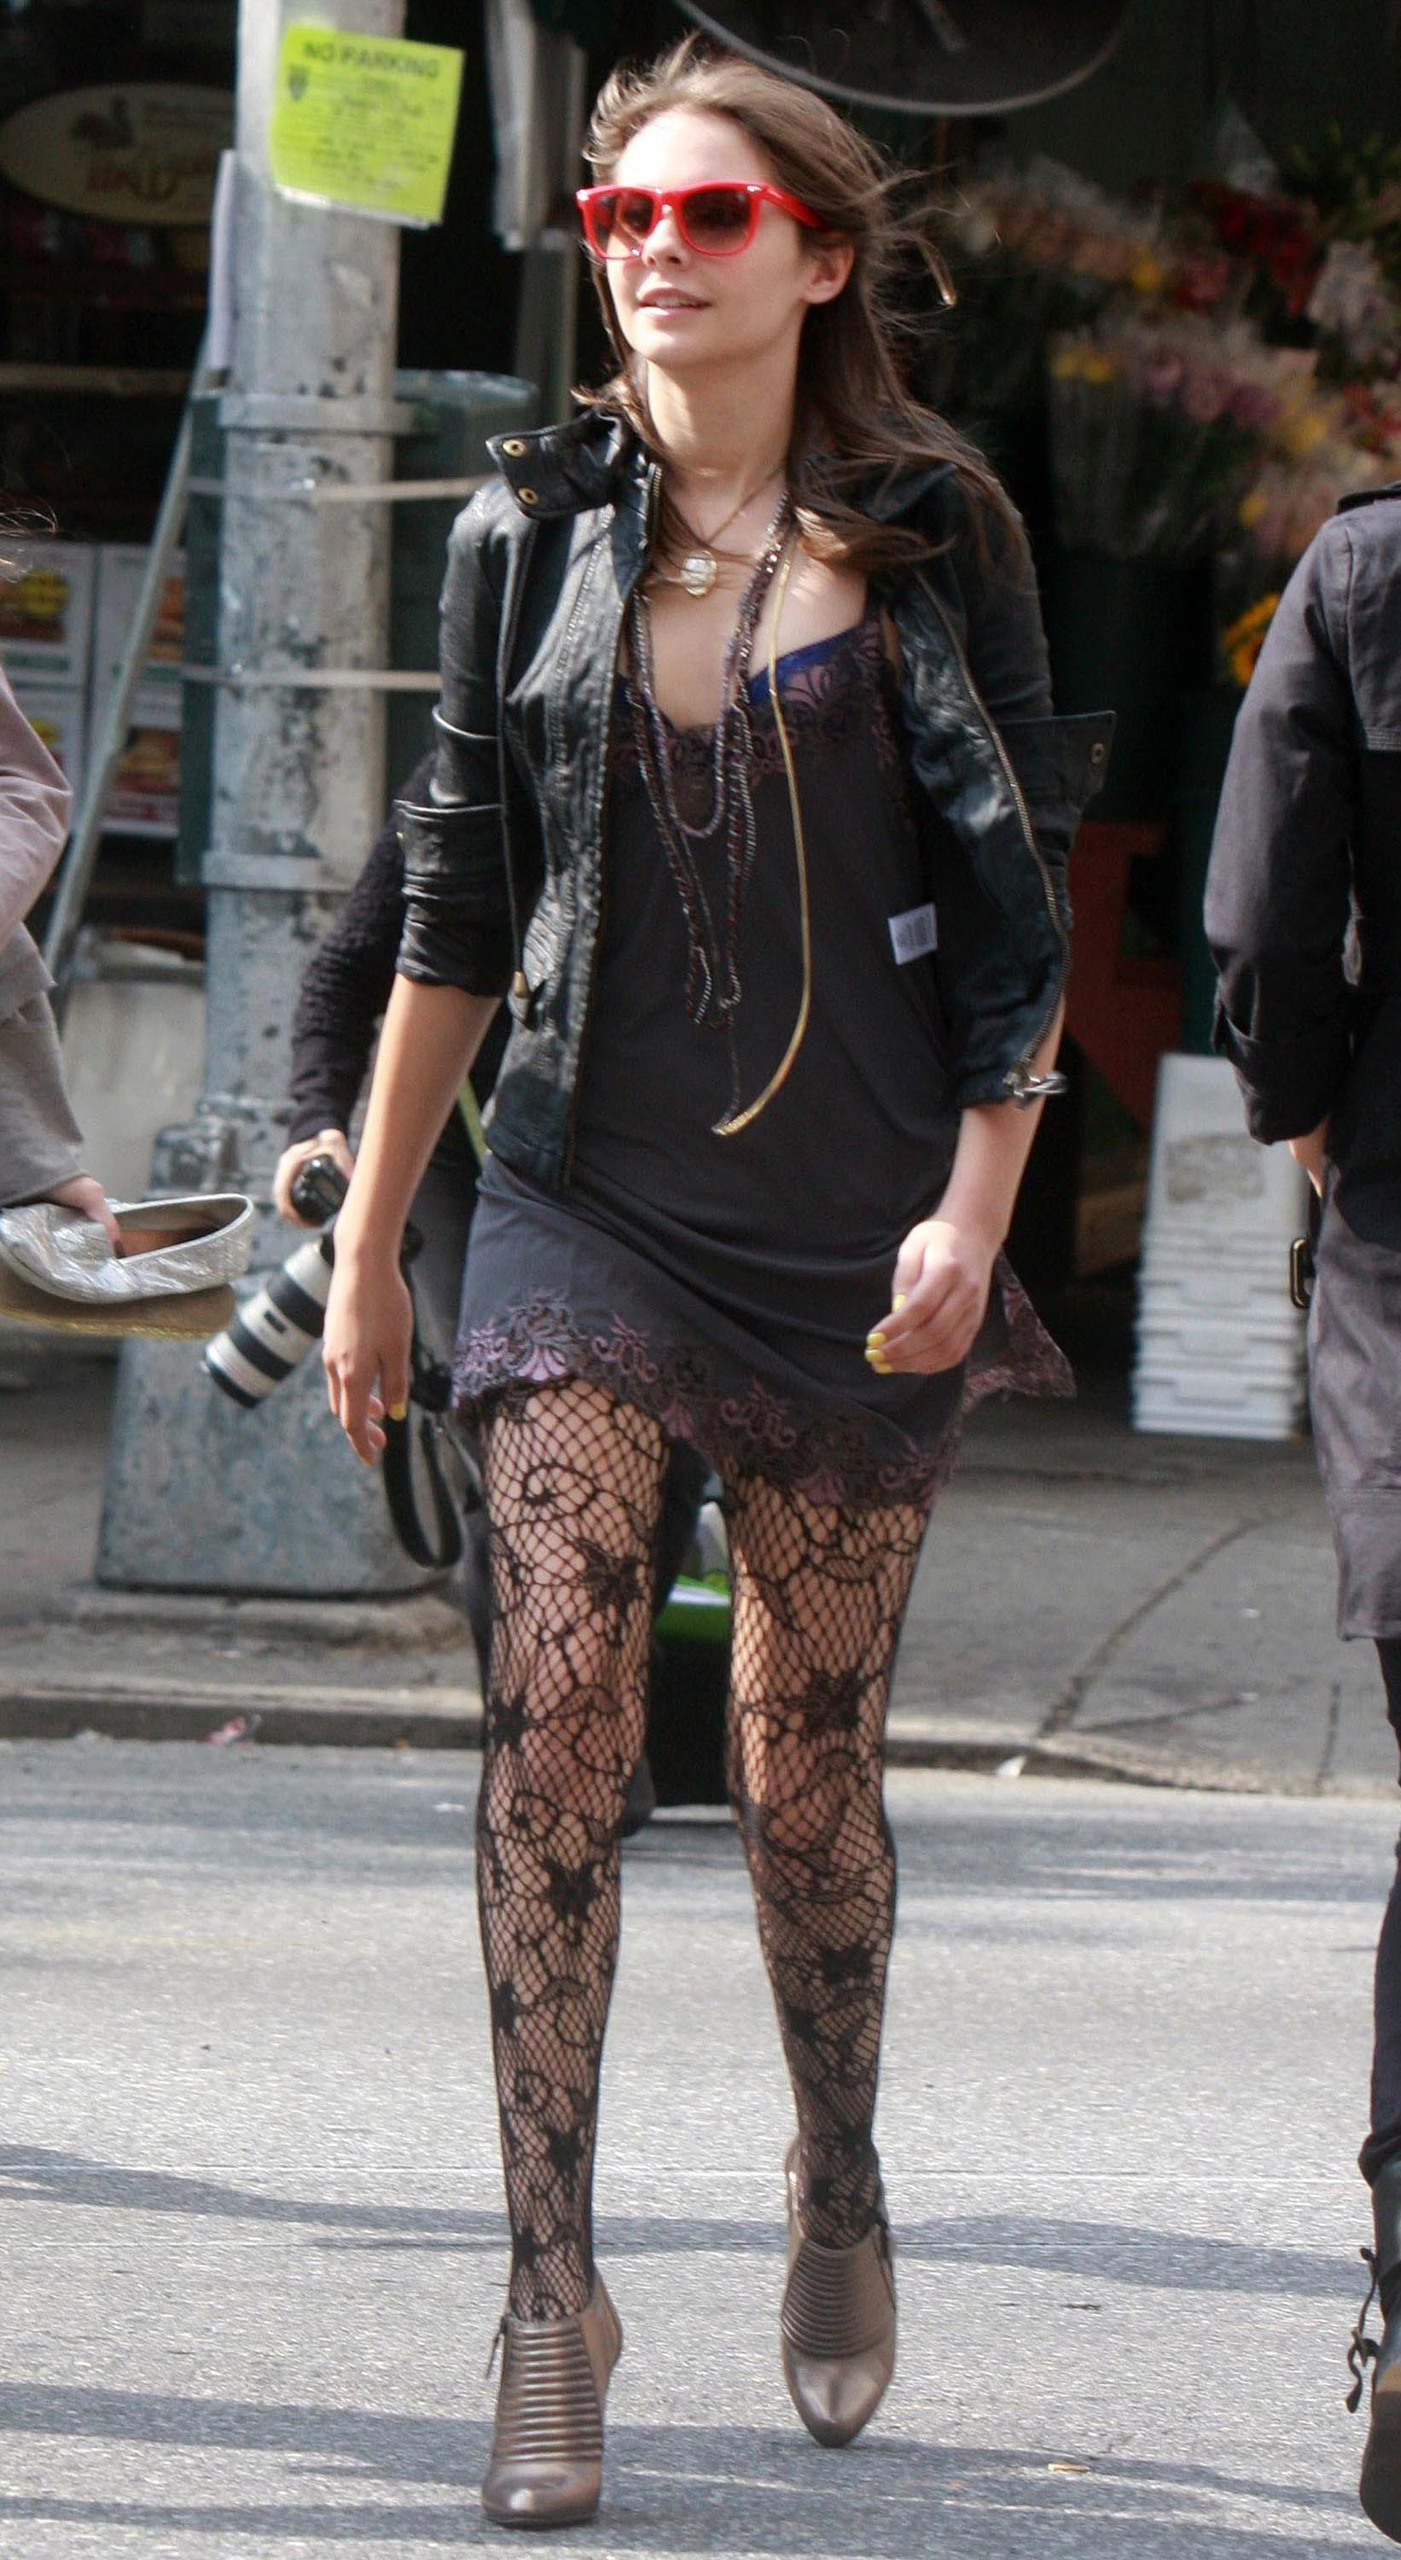 Willa-Holland-on-set-gossip-girl-2480347-1401-2560.jpg